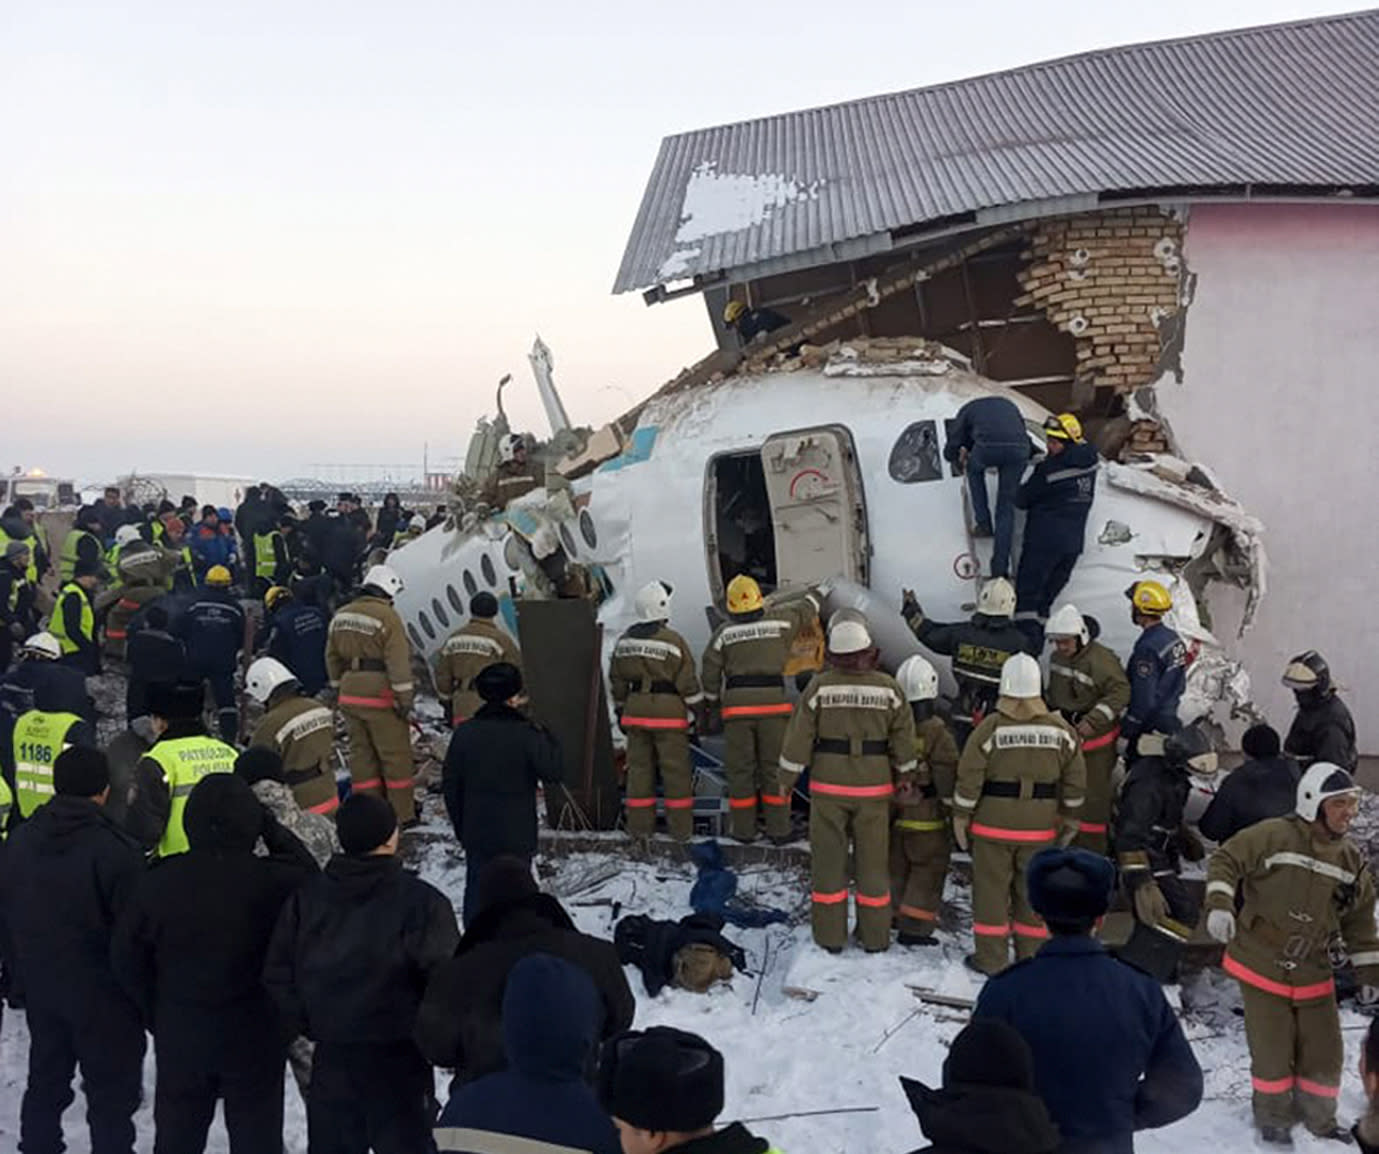 At least 15 dead with scores in hospital after Kazakhstan aircraft crash